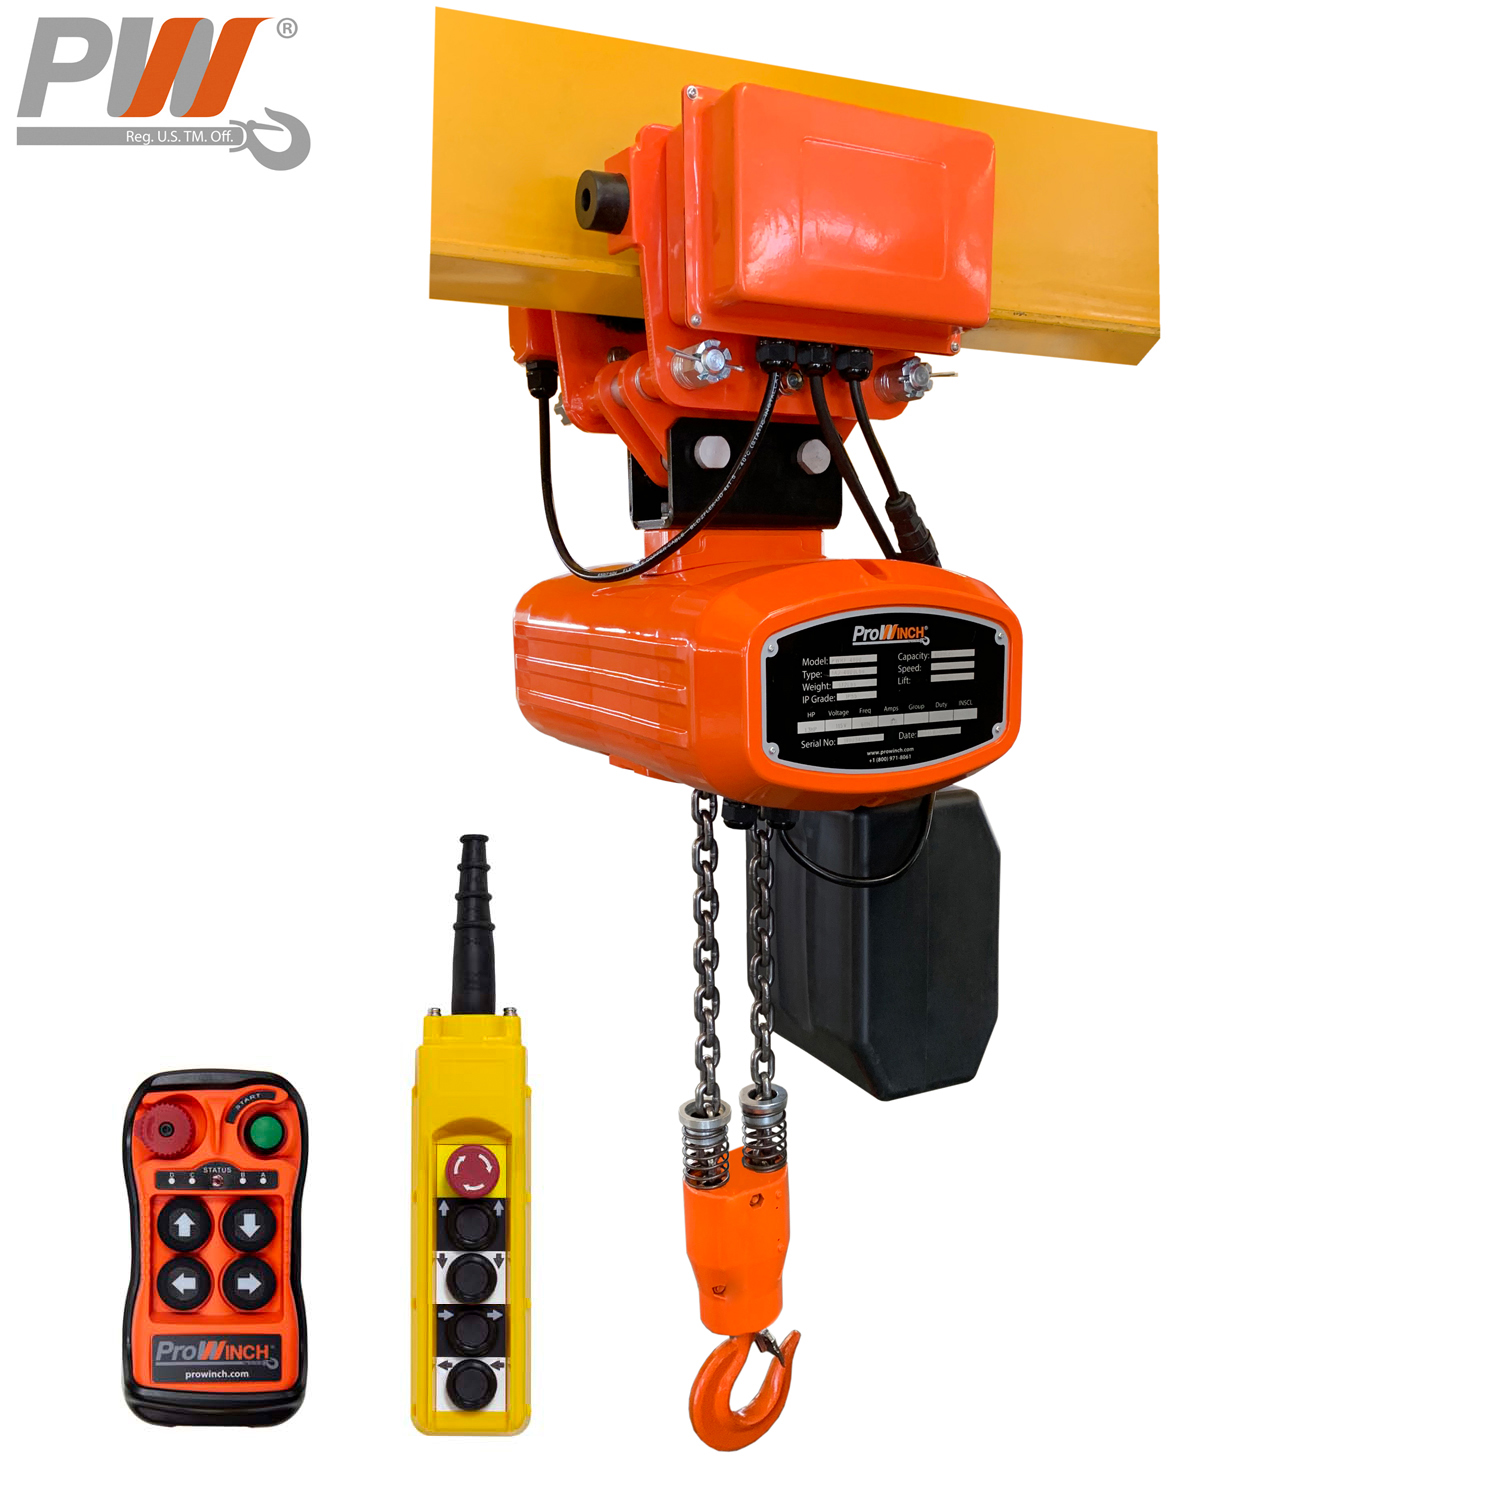 1000 Lb Electric Chain Hoist W Trolley Buffing Polishing Accessories Abrasive Finishing Products